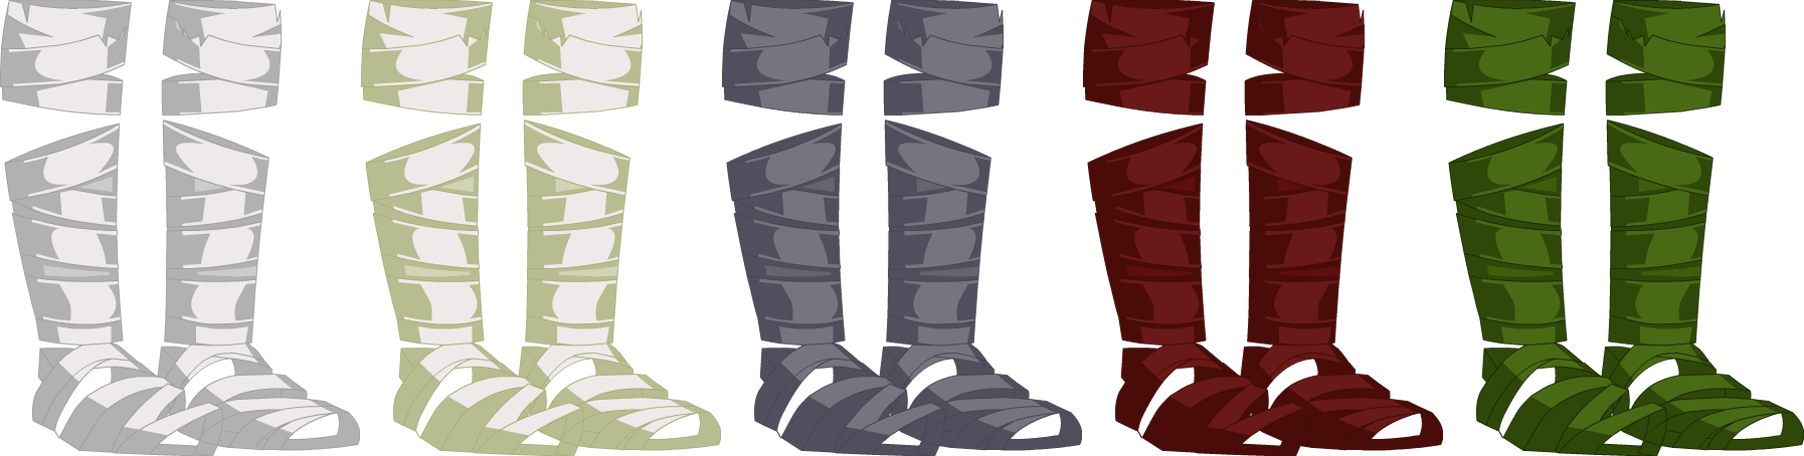 Knife-Head Foot Wraps